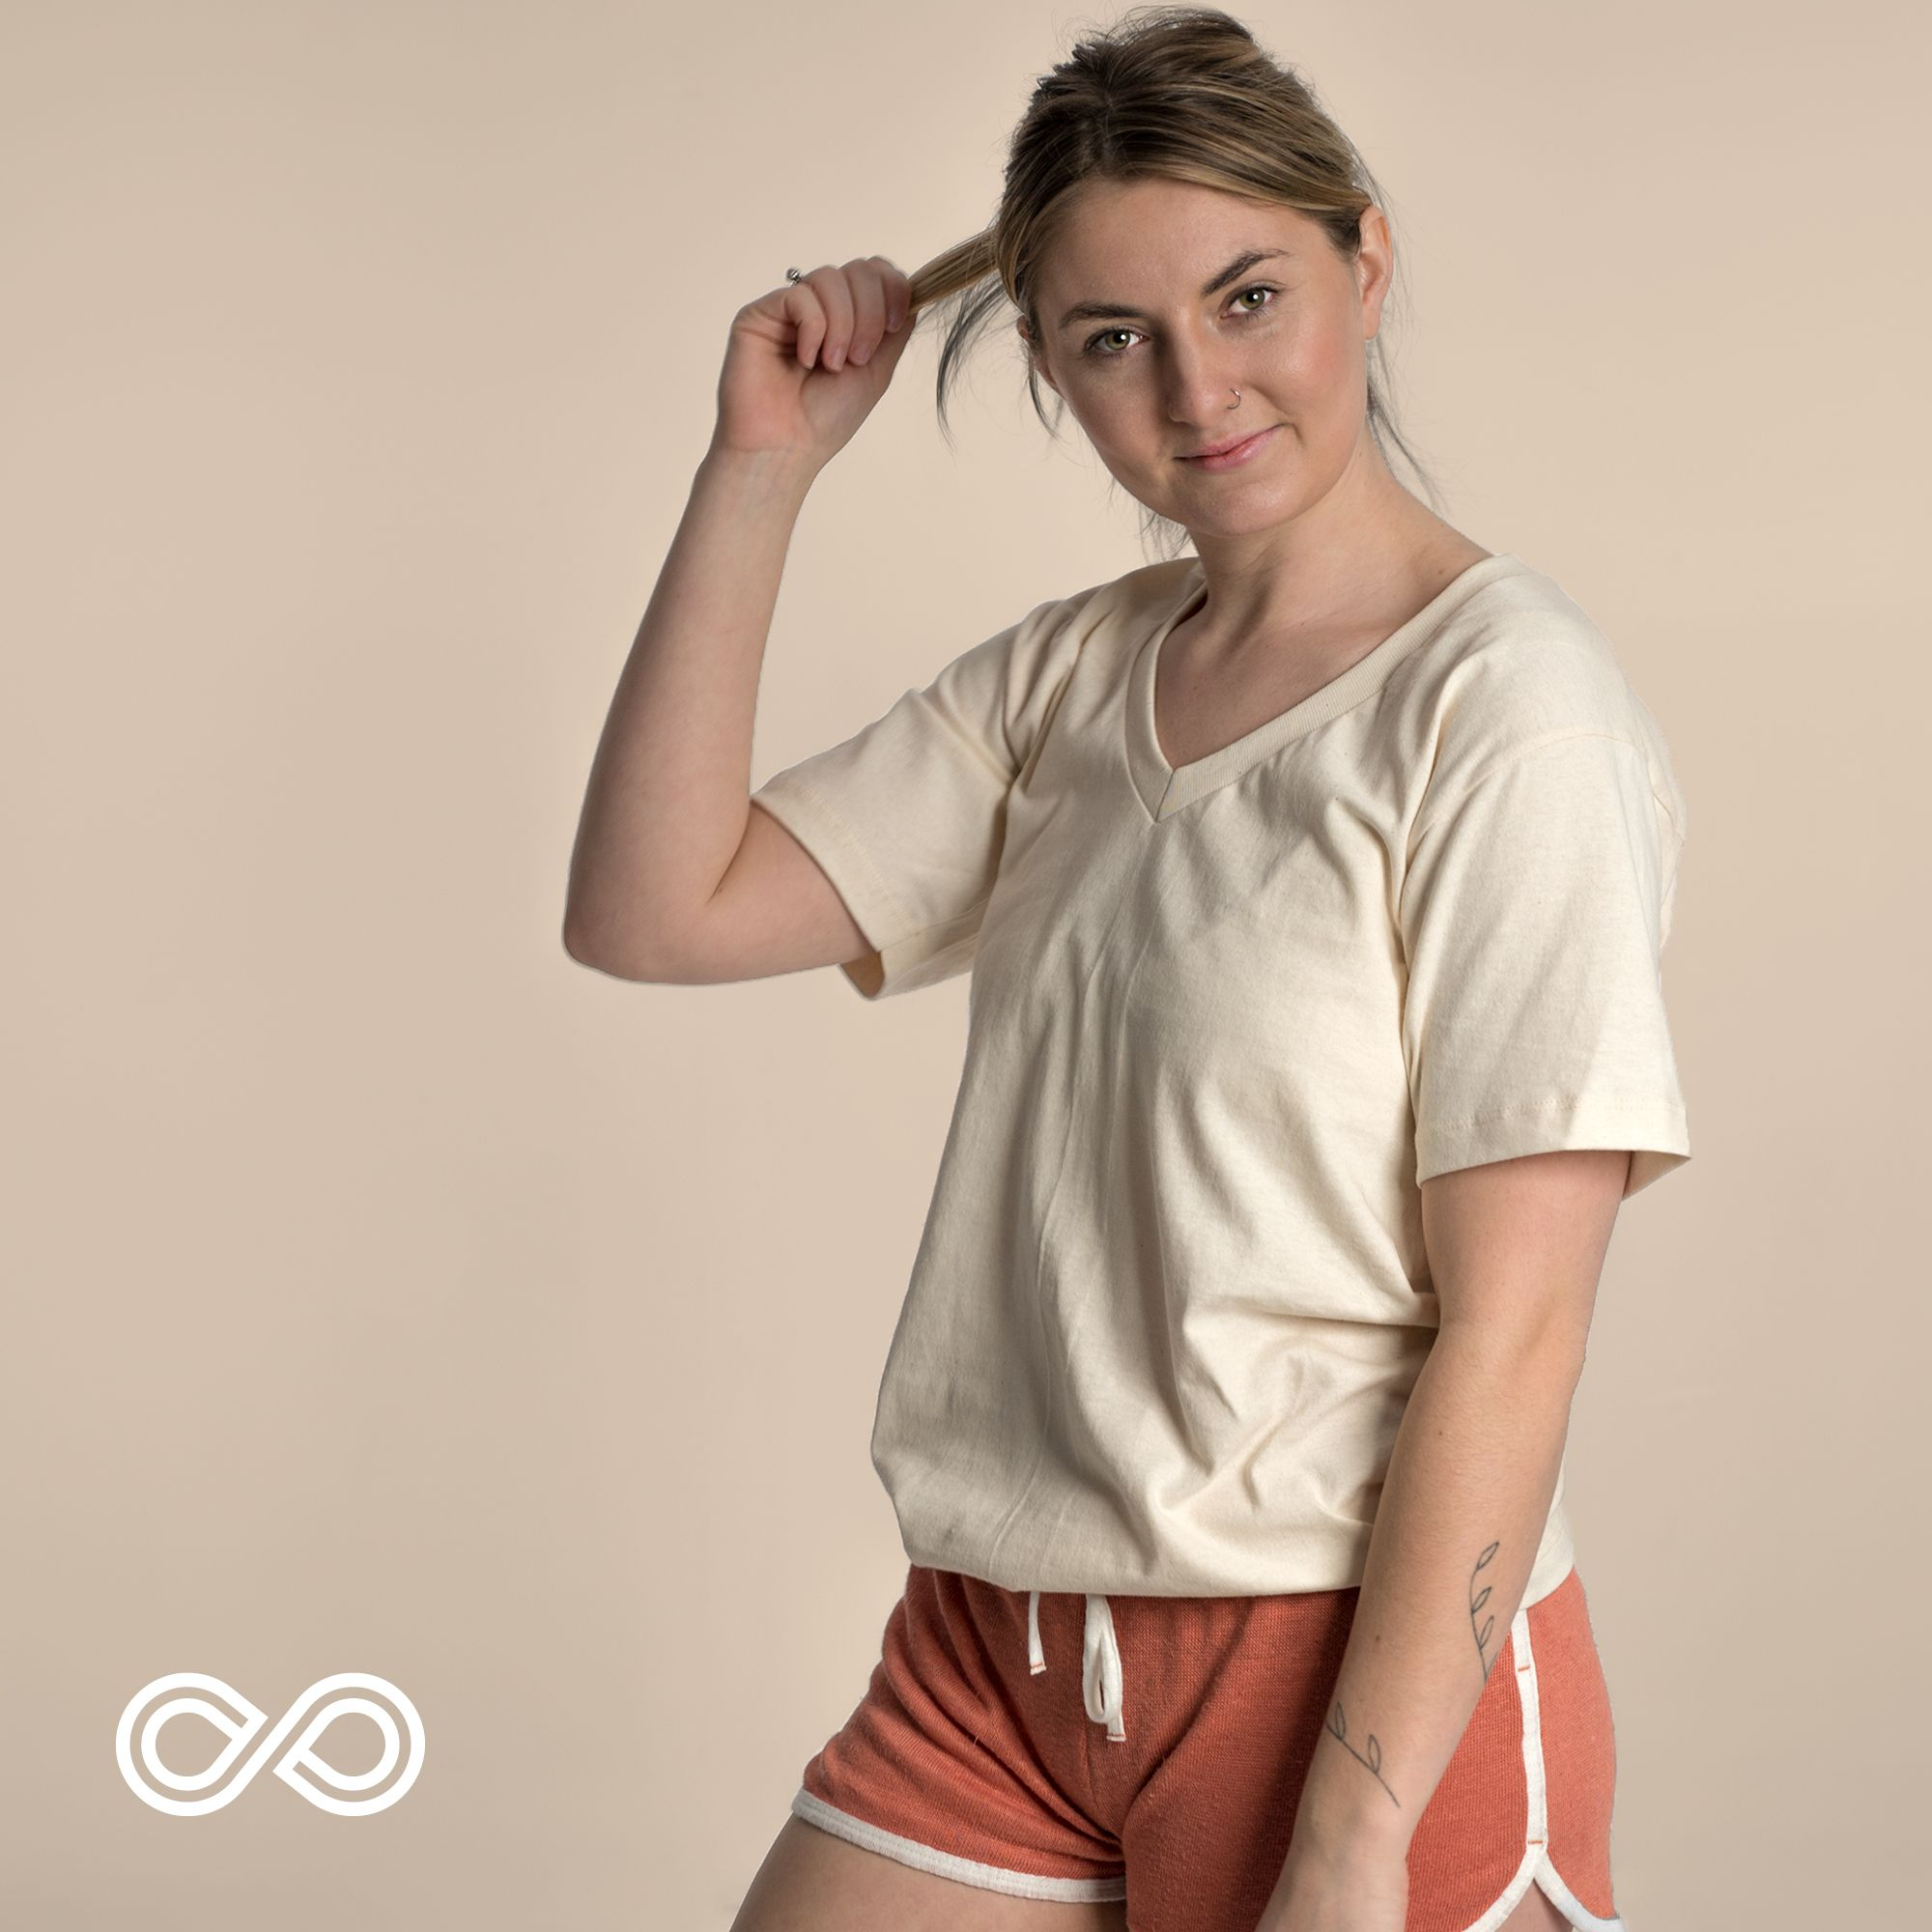 c80819adfb62 Feeling sporty? Hannah is wearing the Mendocino organic cotton T-shirt and  the Portland organic hemp shorts. #rawganique #linen #wearhemp #sustainable  ...